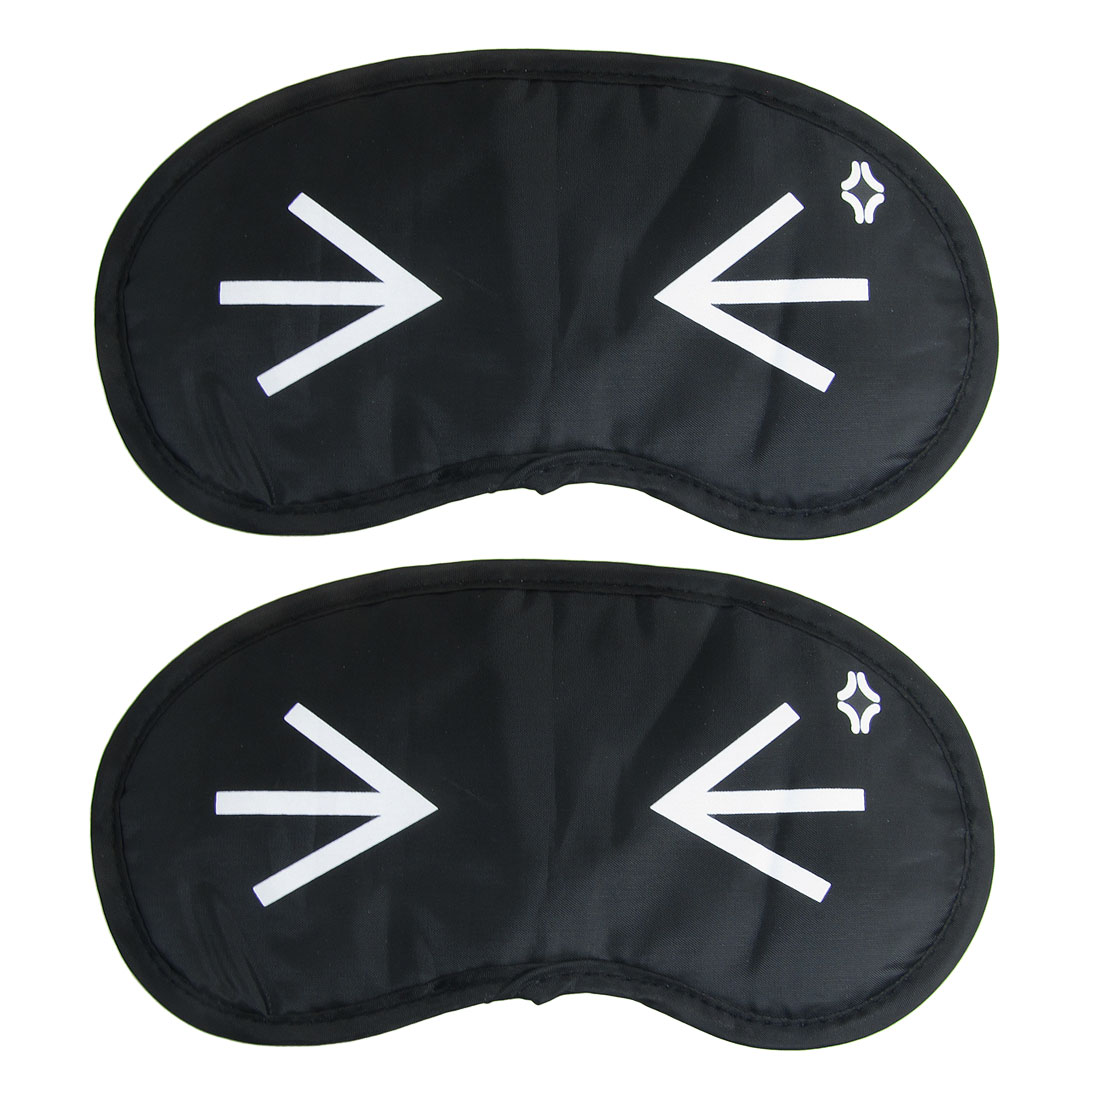 Cartoon Eyes Pattern Black Nylon Eye Mask Eyeshade Sleep Blinder 2 Pcs